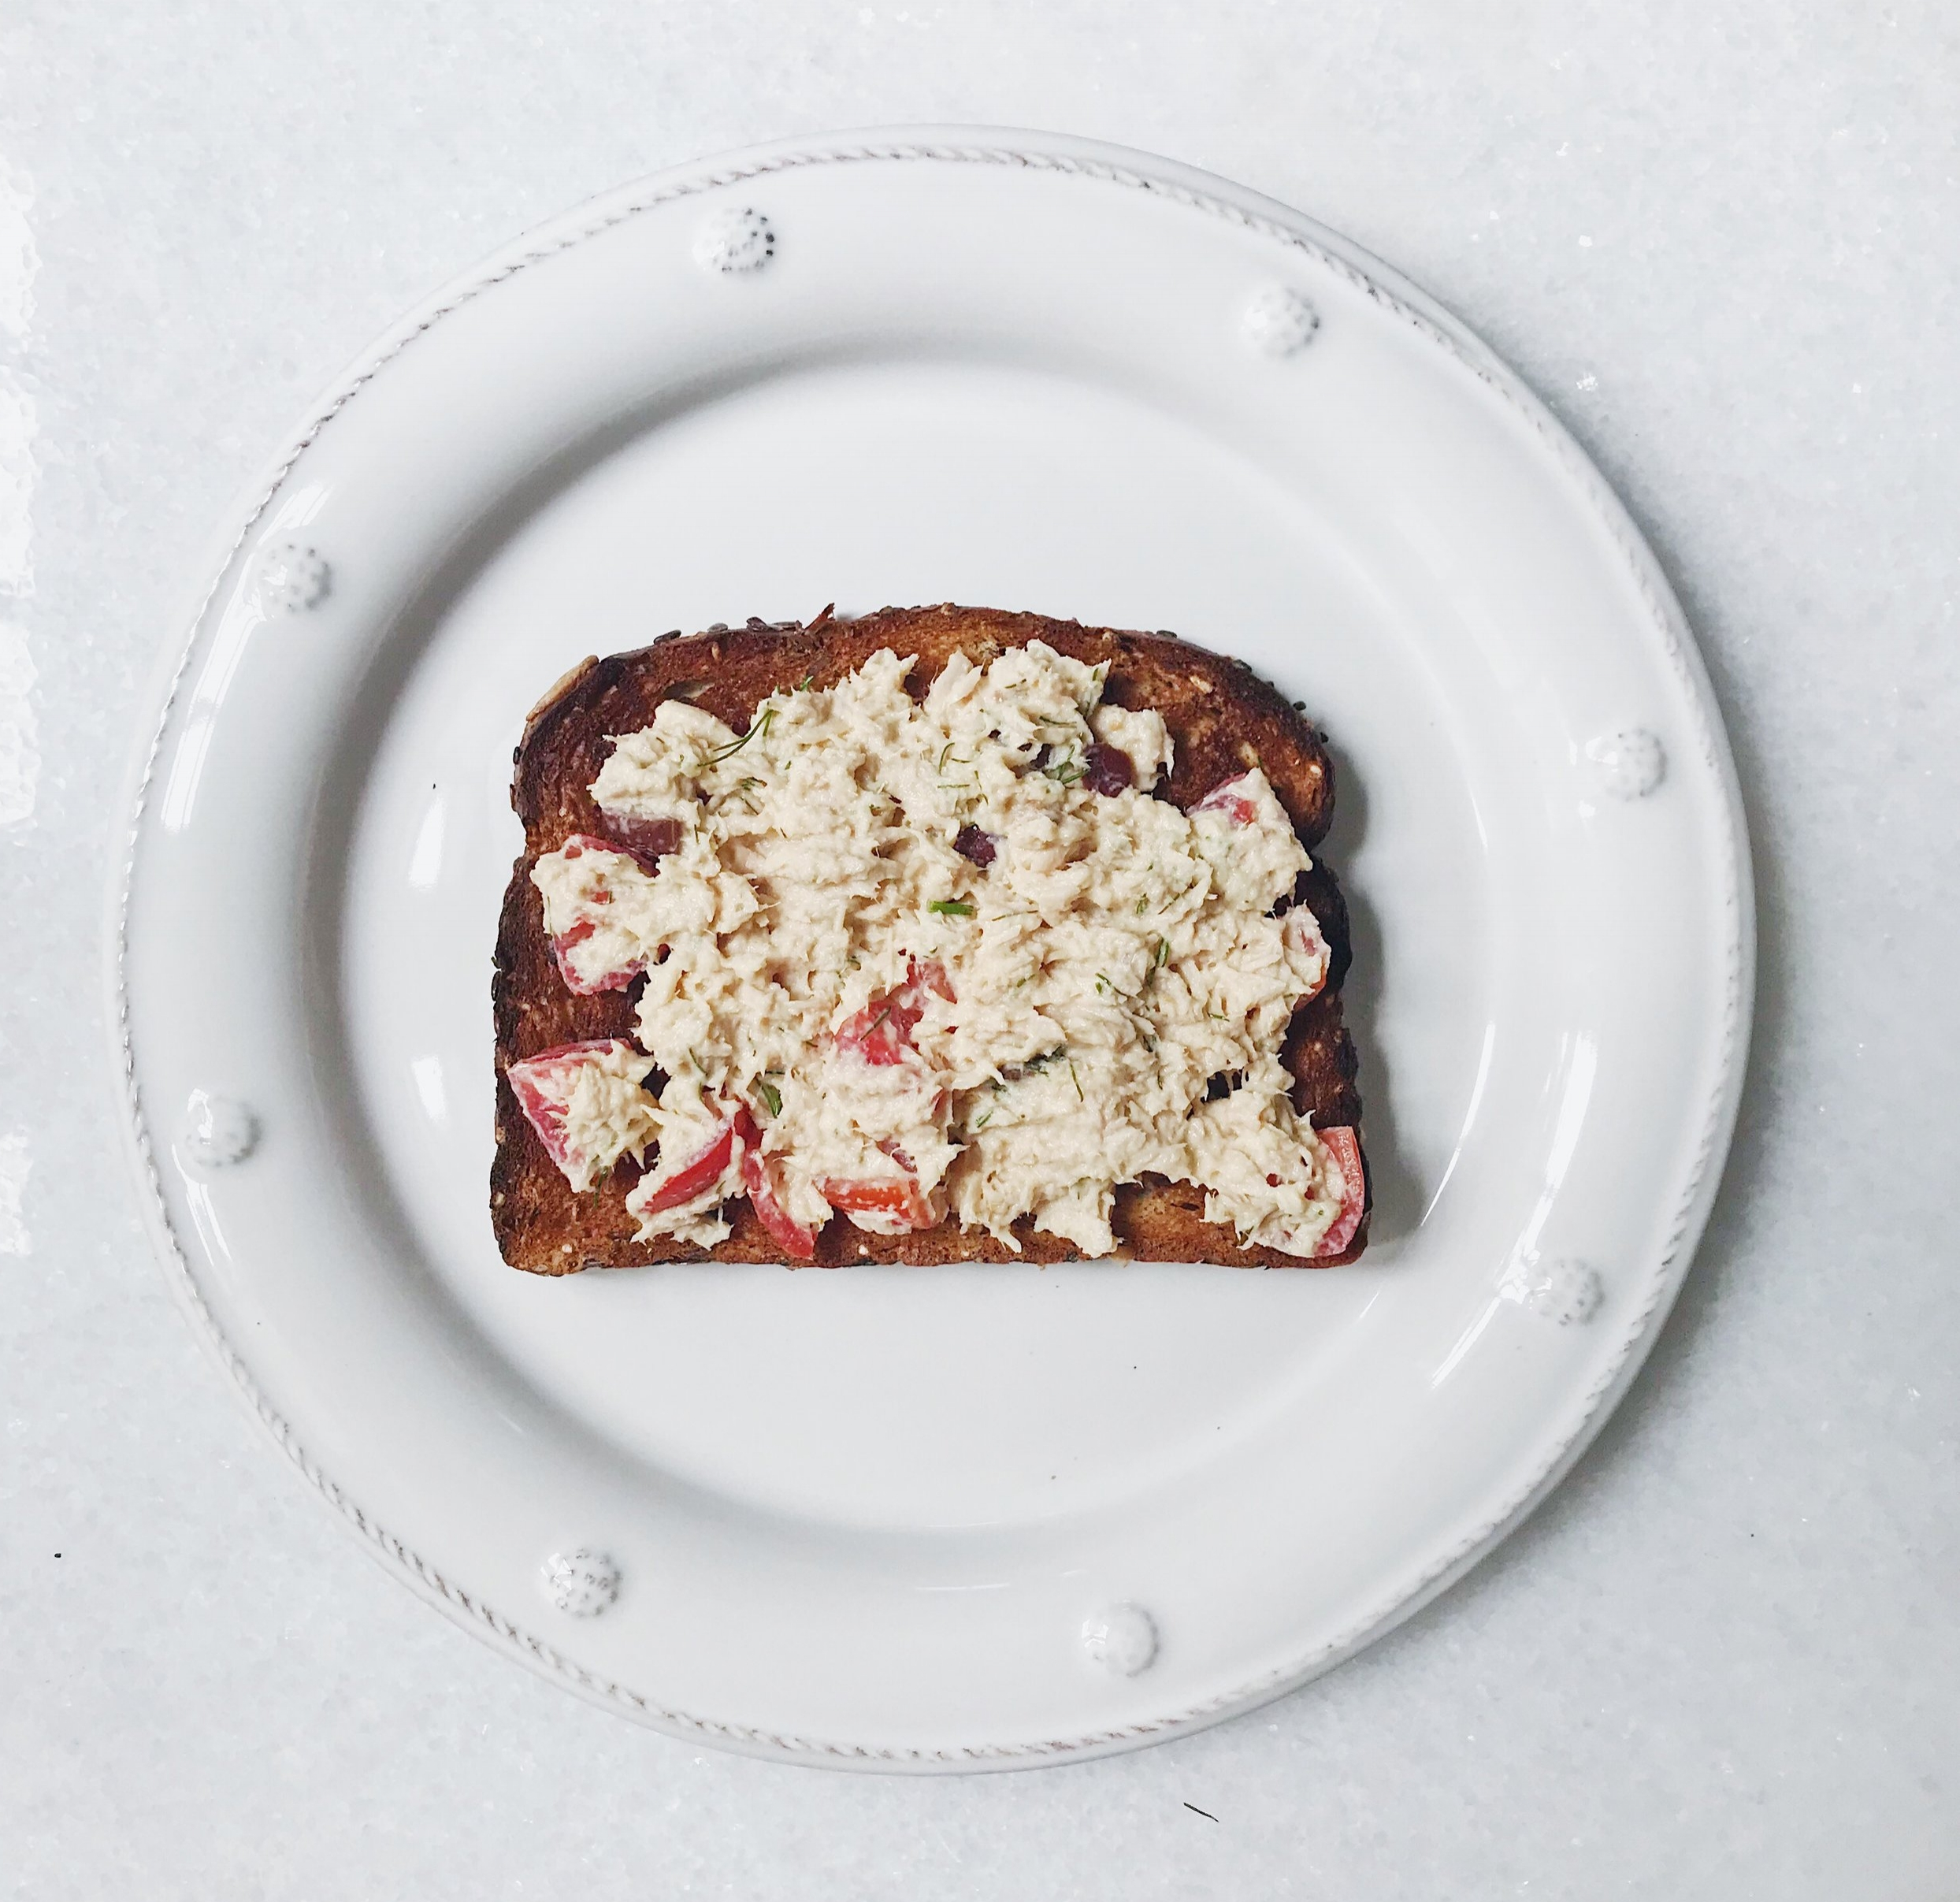 04_tuna on toast.JPG